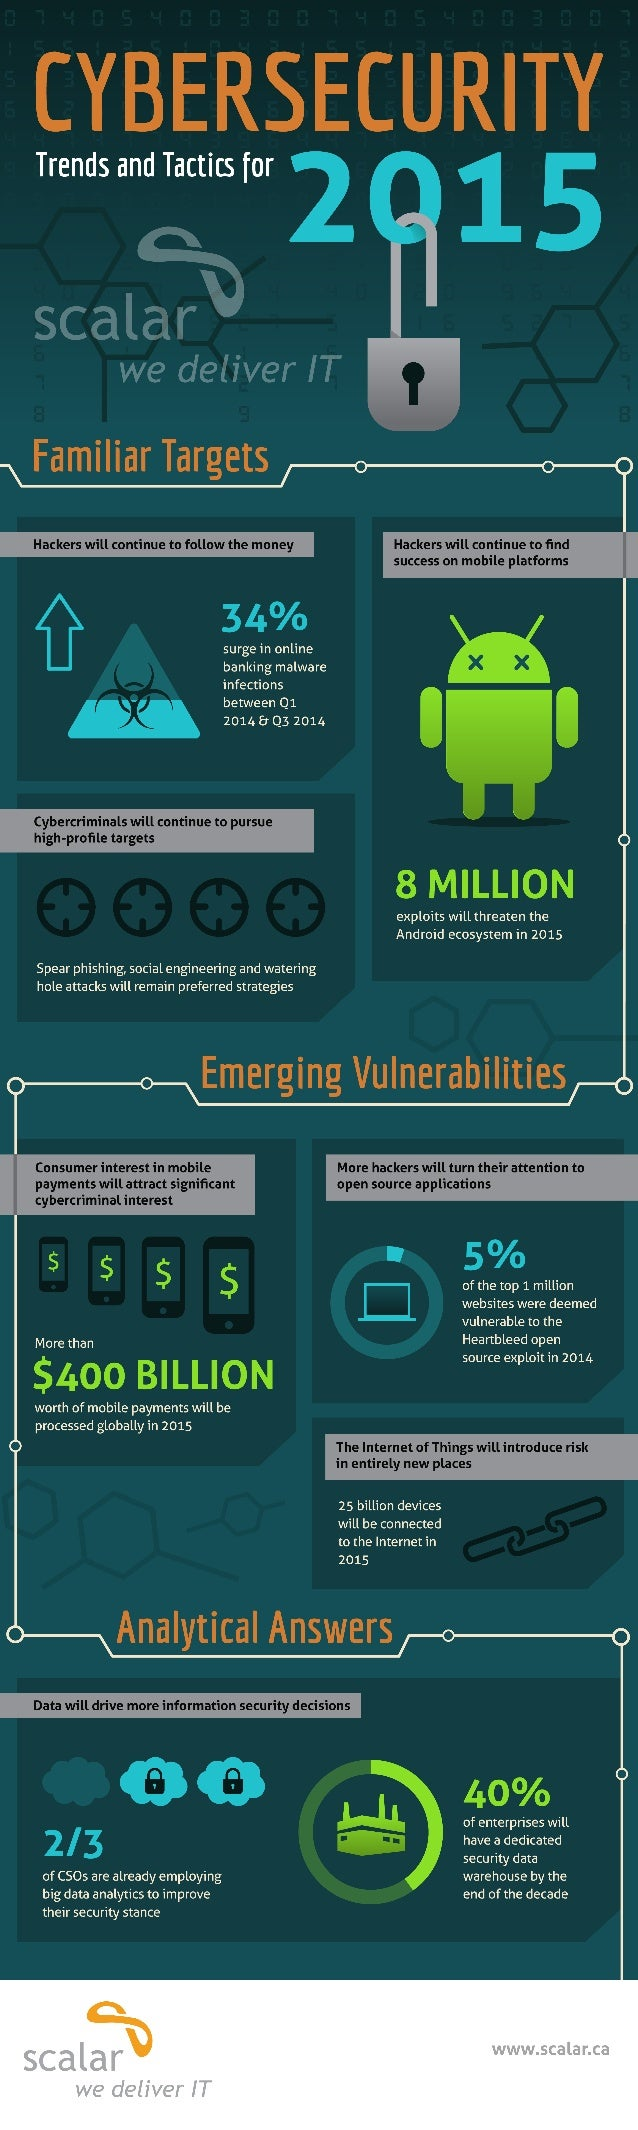 Cyber Security Trends And Tactics For 2015